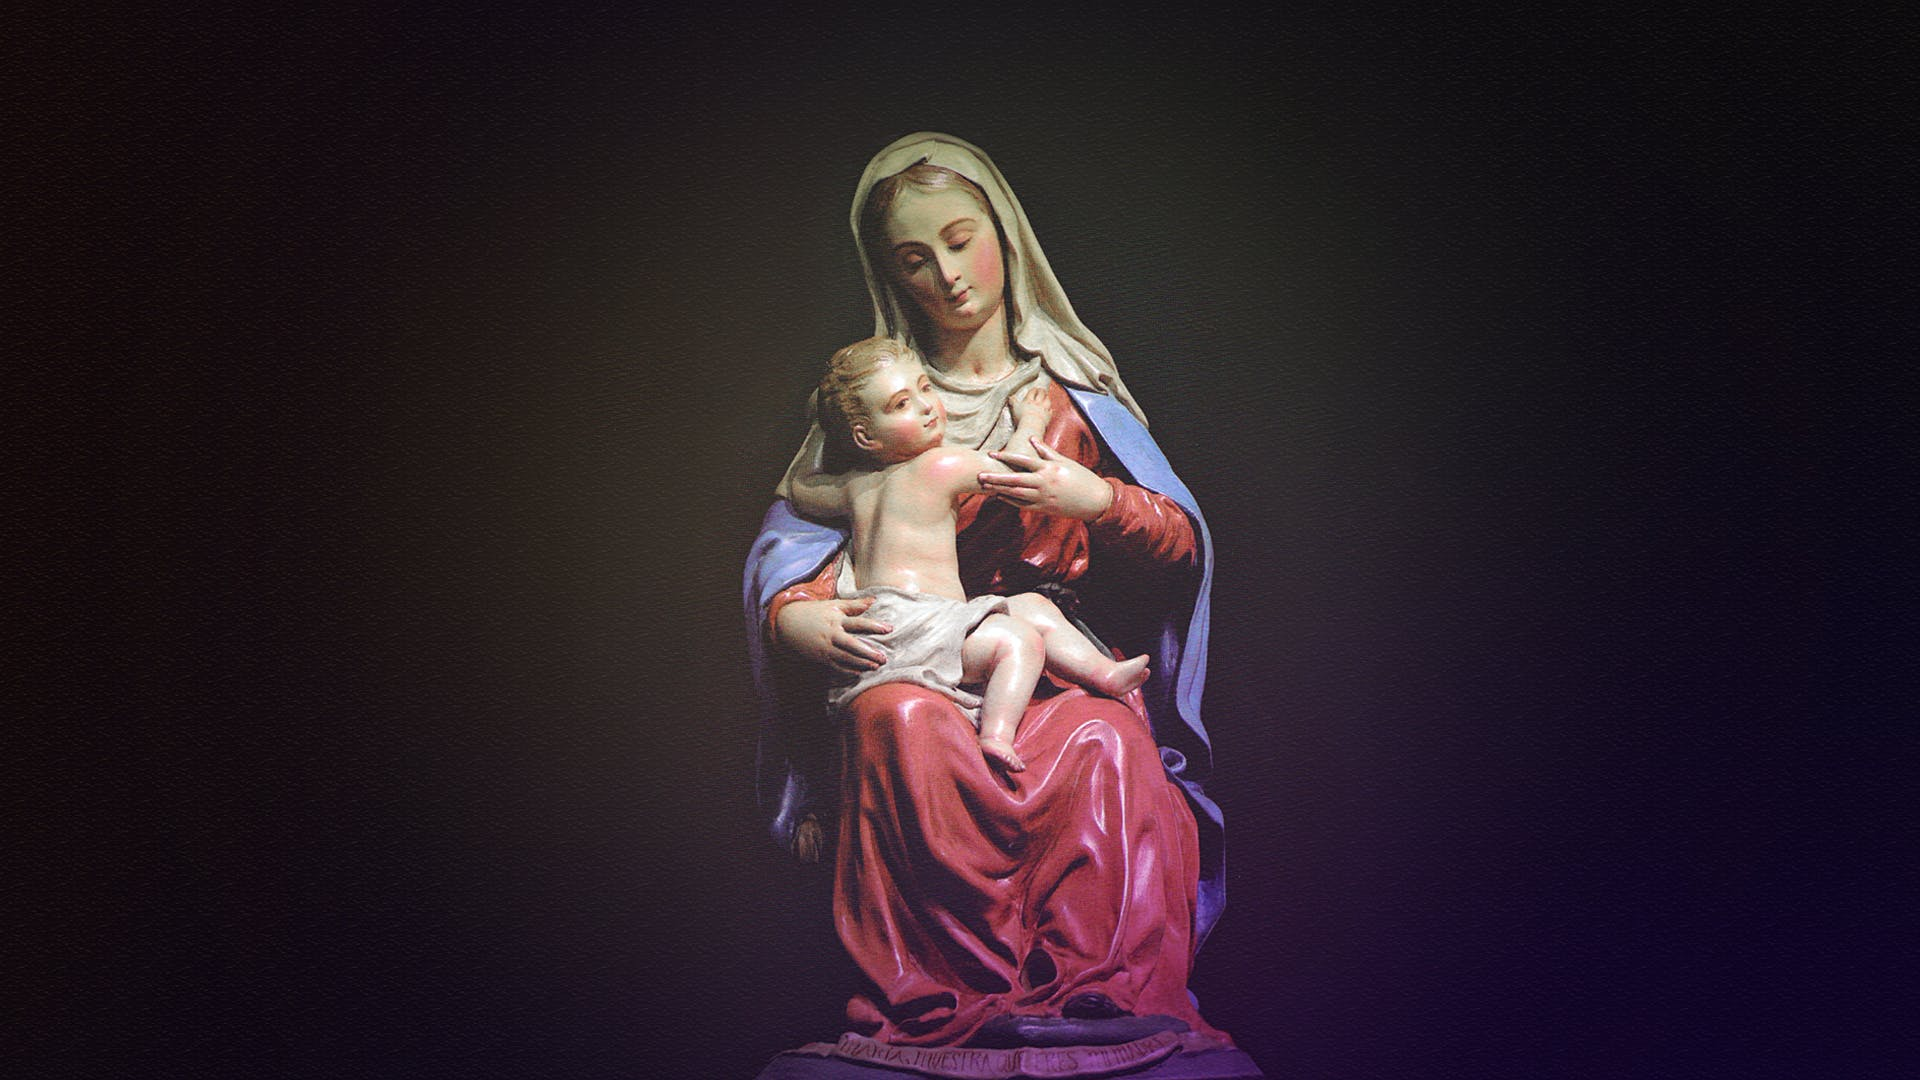 Mother Mary and Christ Figurine on Black Background